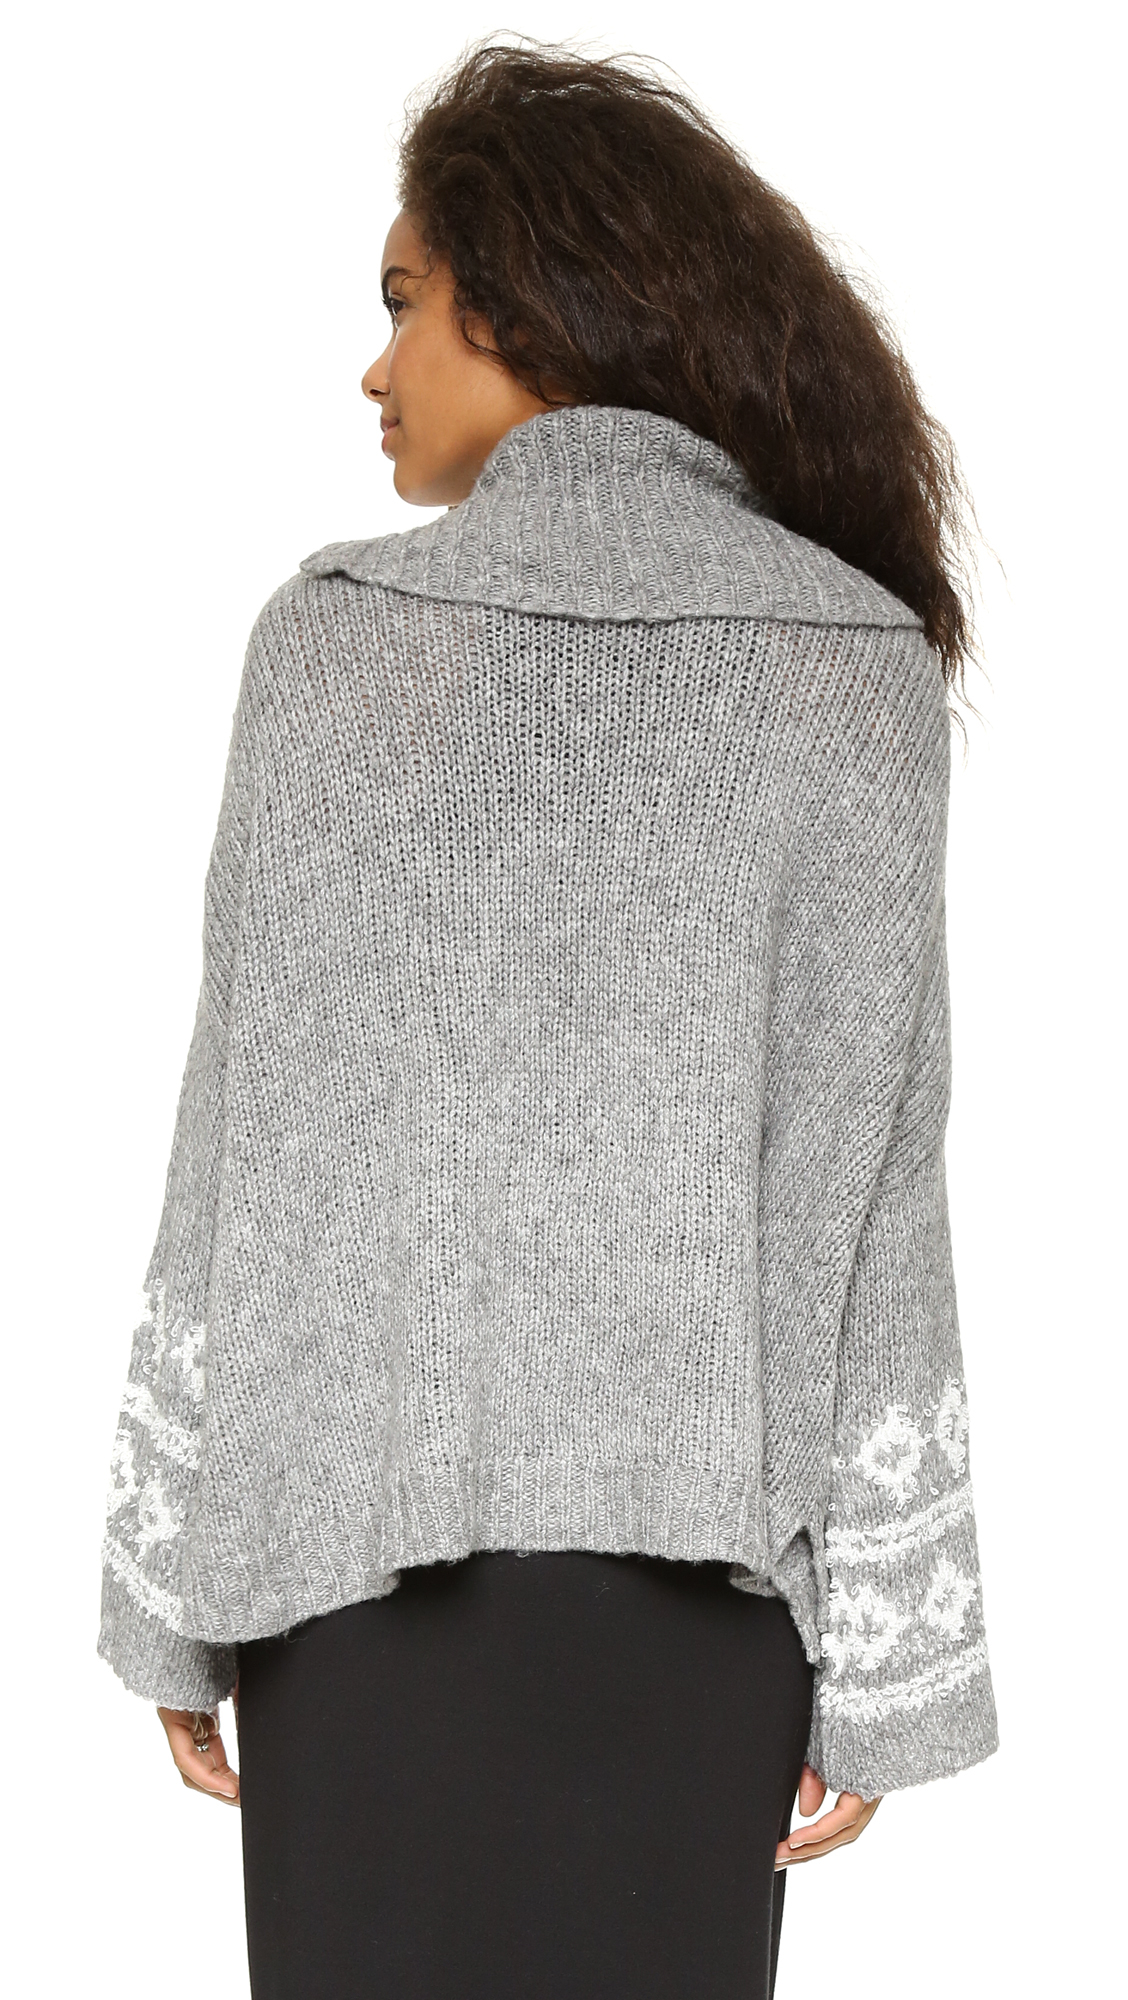 Free people Fair Isle Split Neck Sweater - Charcoal/ivory in Gray ...